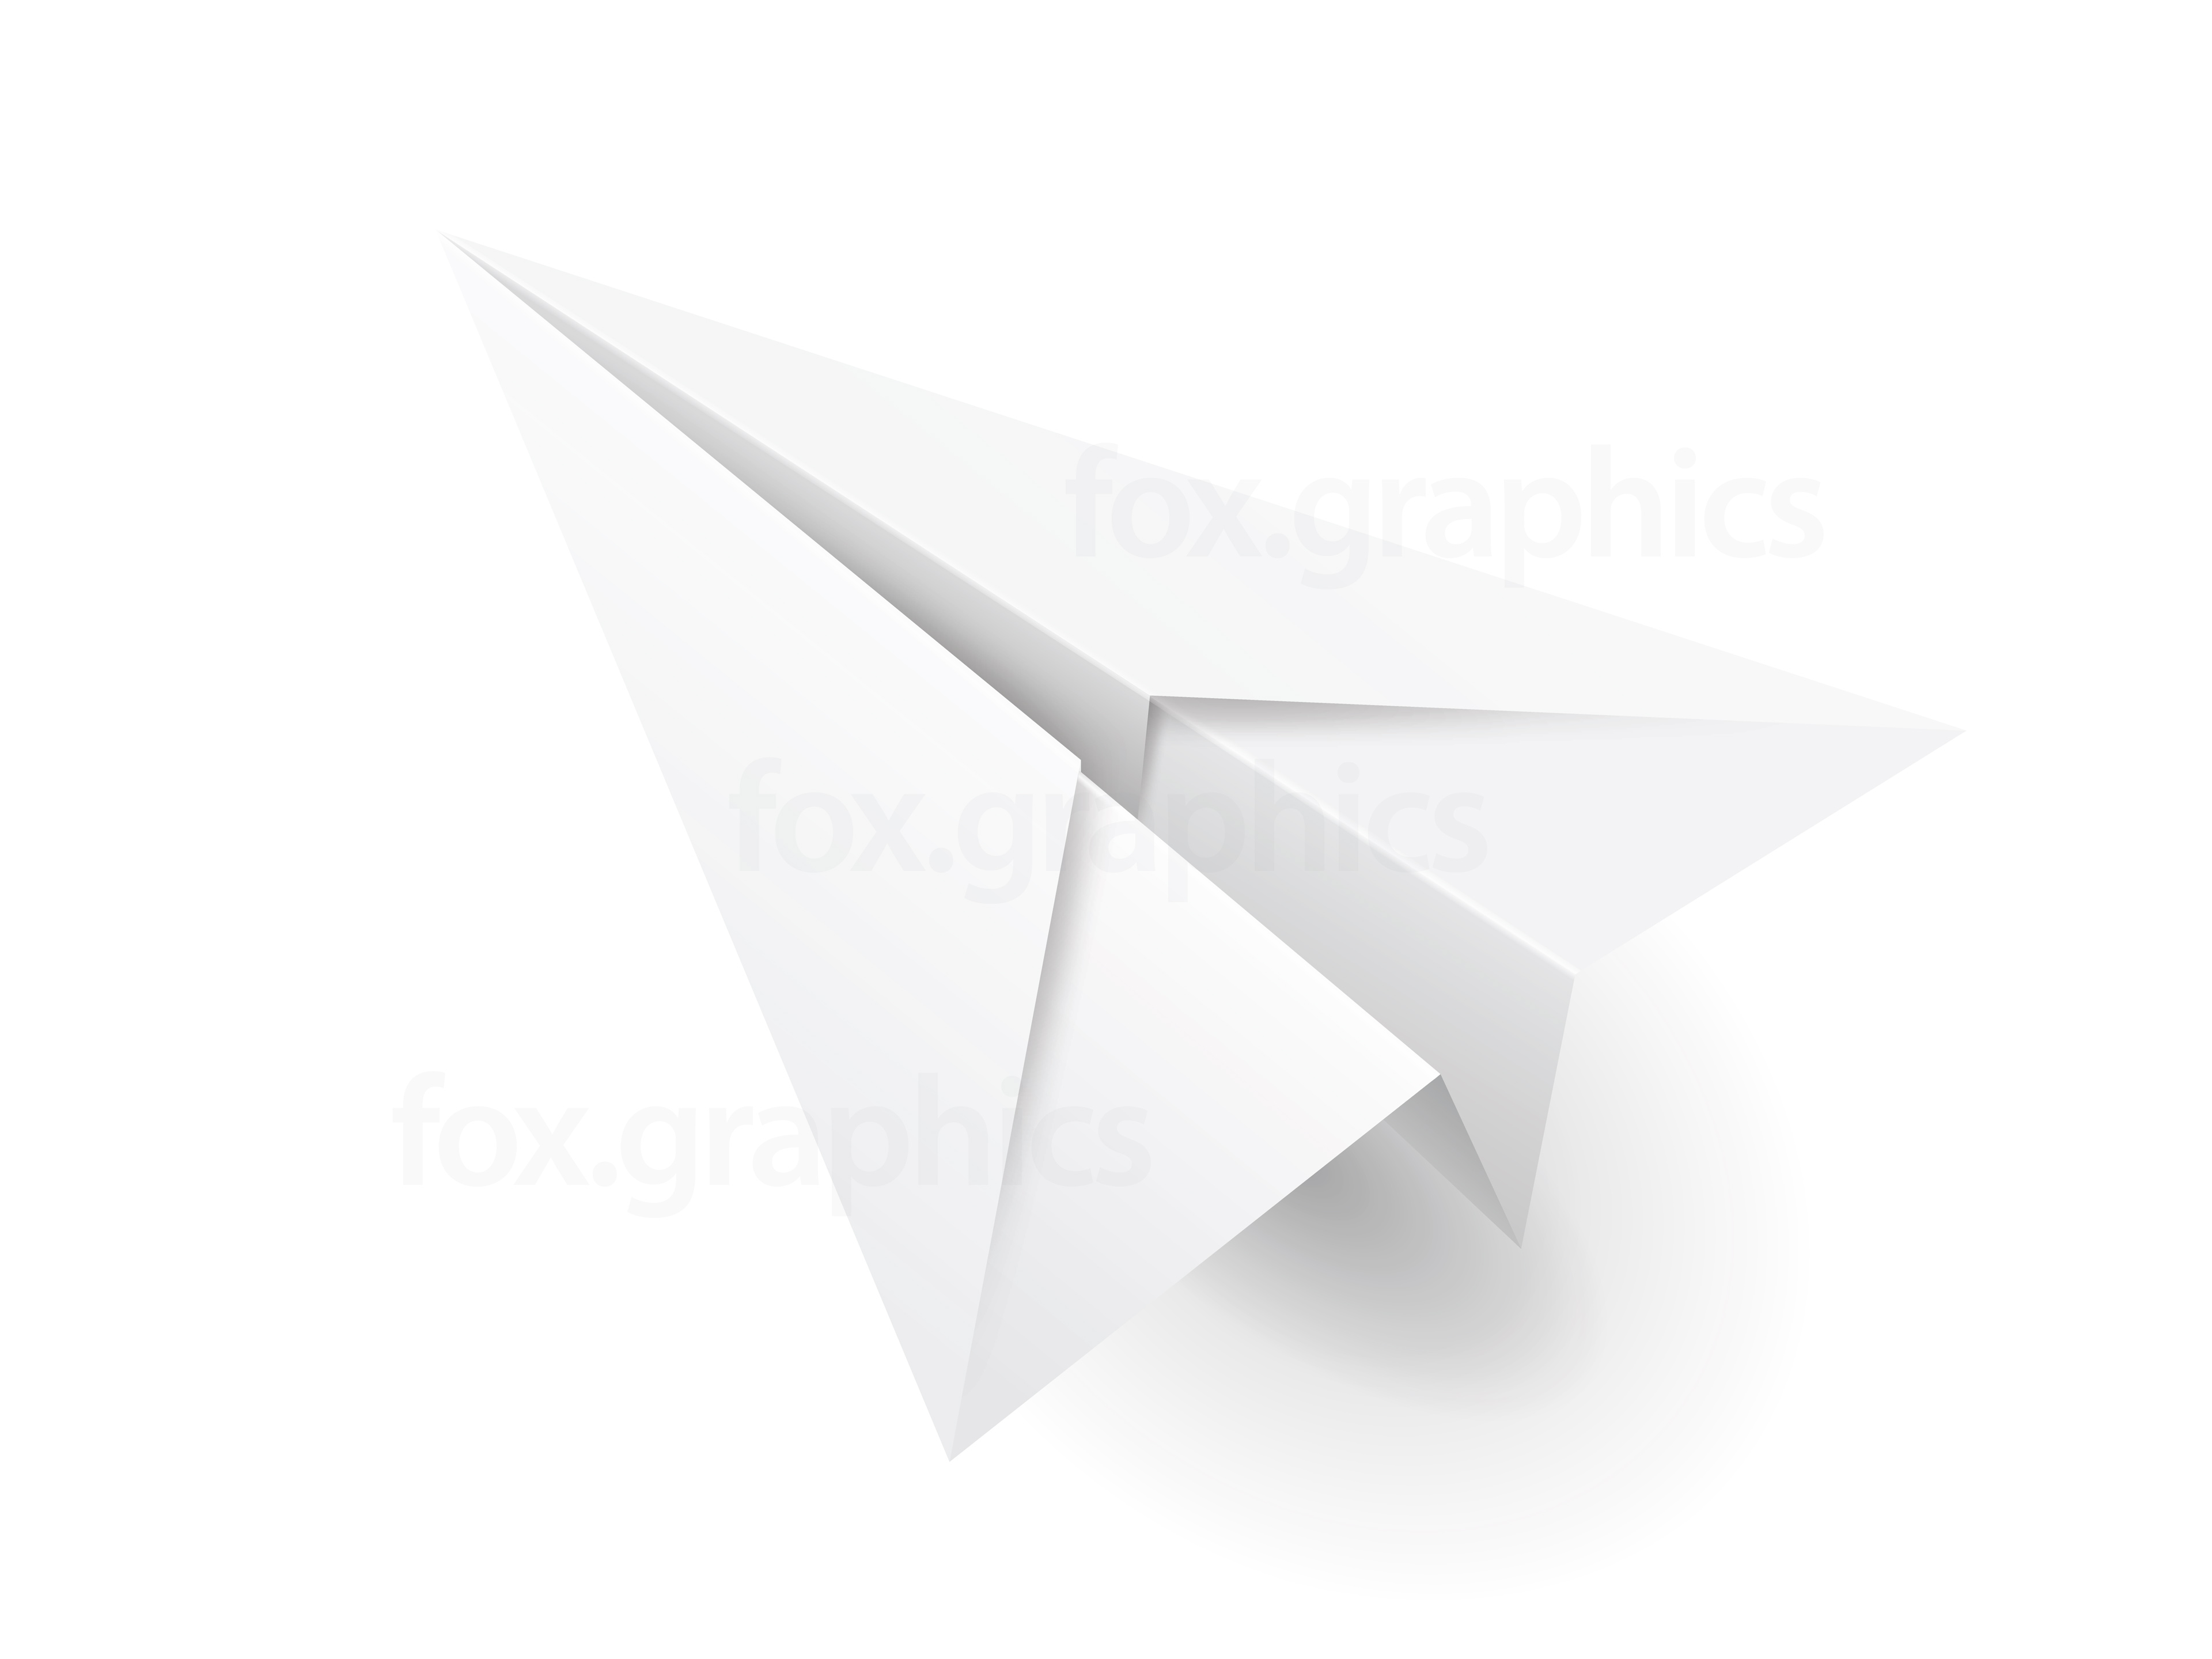 3840x2880 Paper Airplane Png Hd Transparent Paper Airplane Hd.png Images